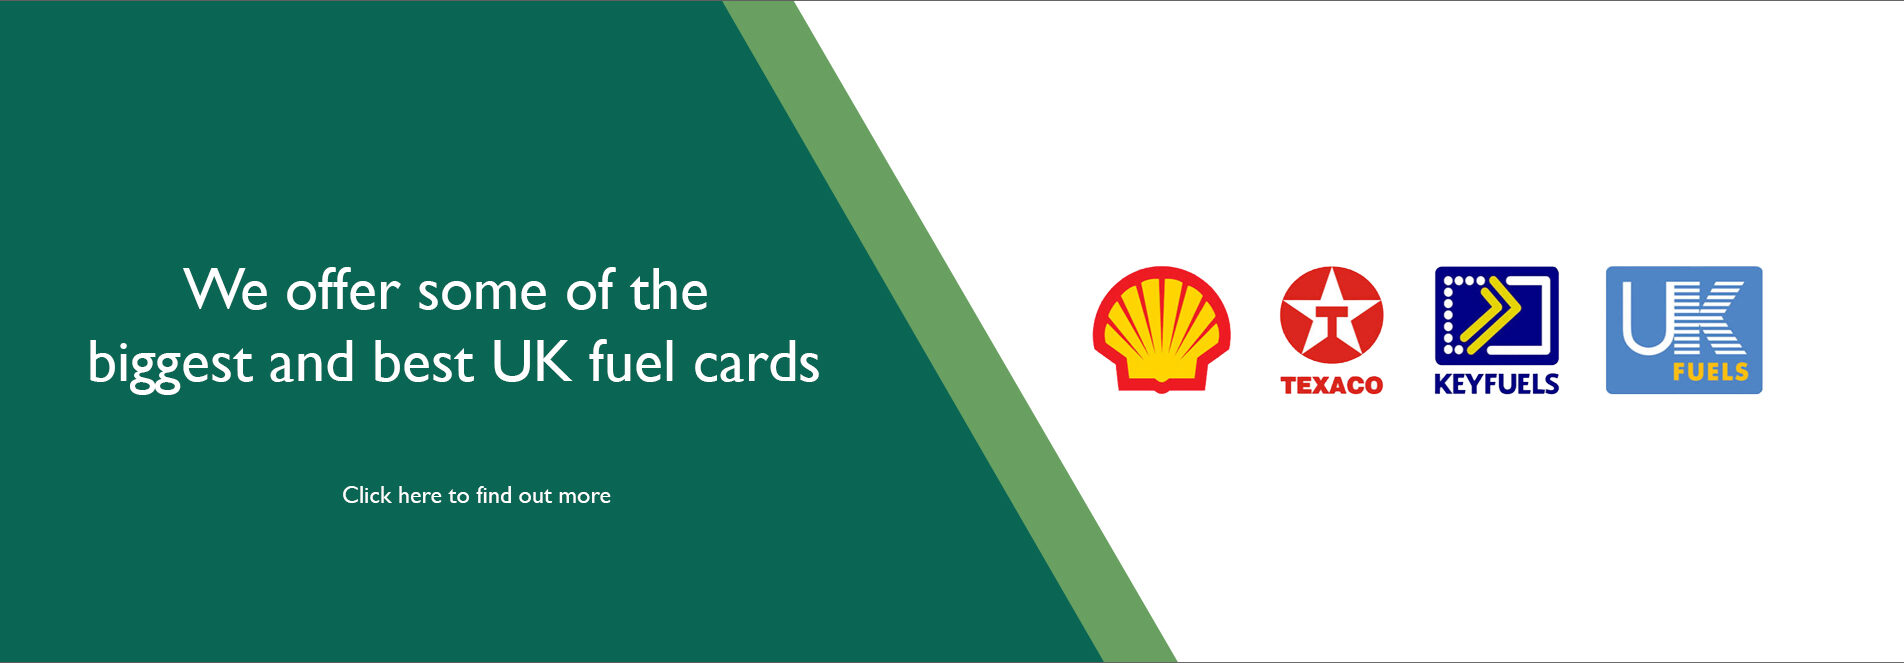 We offer some of the biggest and best UK fuel cards